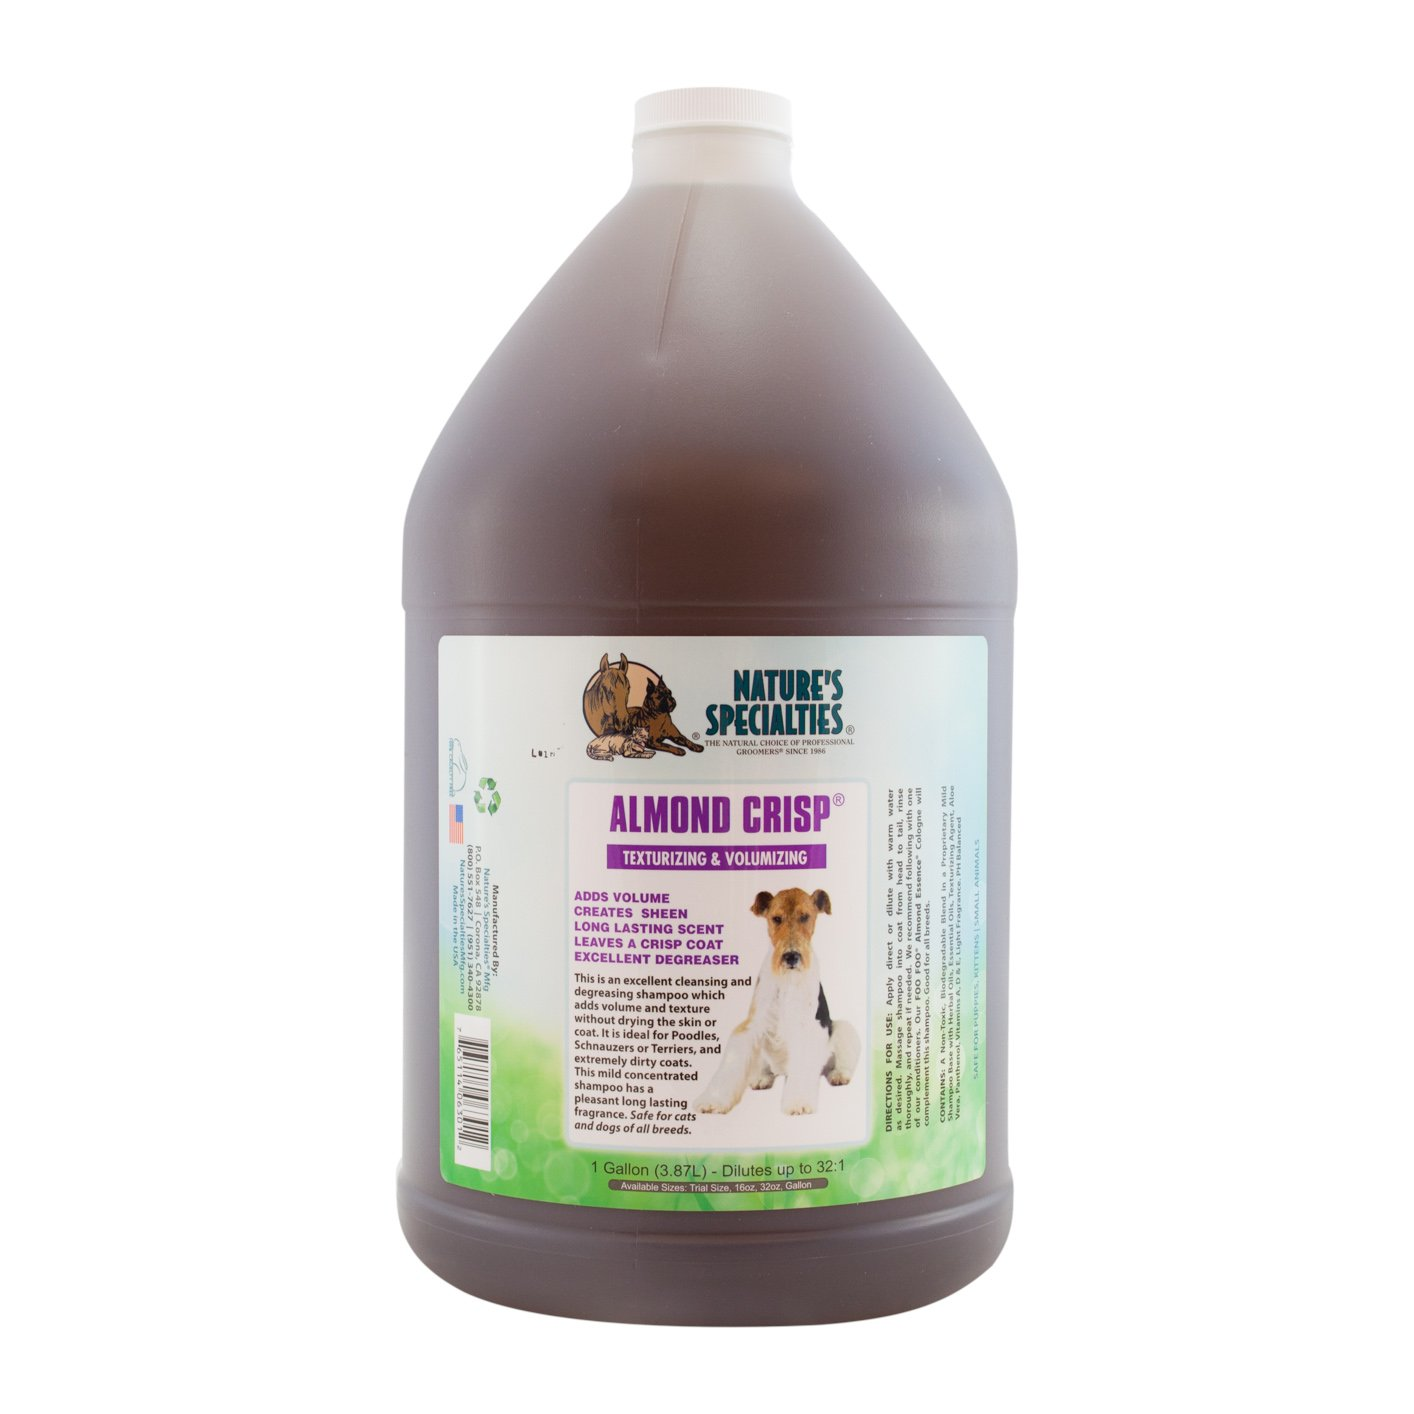 Nature's Specialties Almond Crisp Pet Shampoo